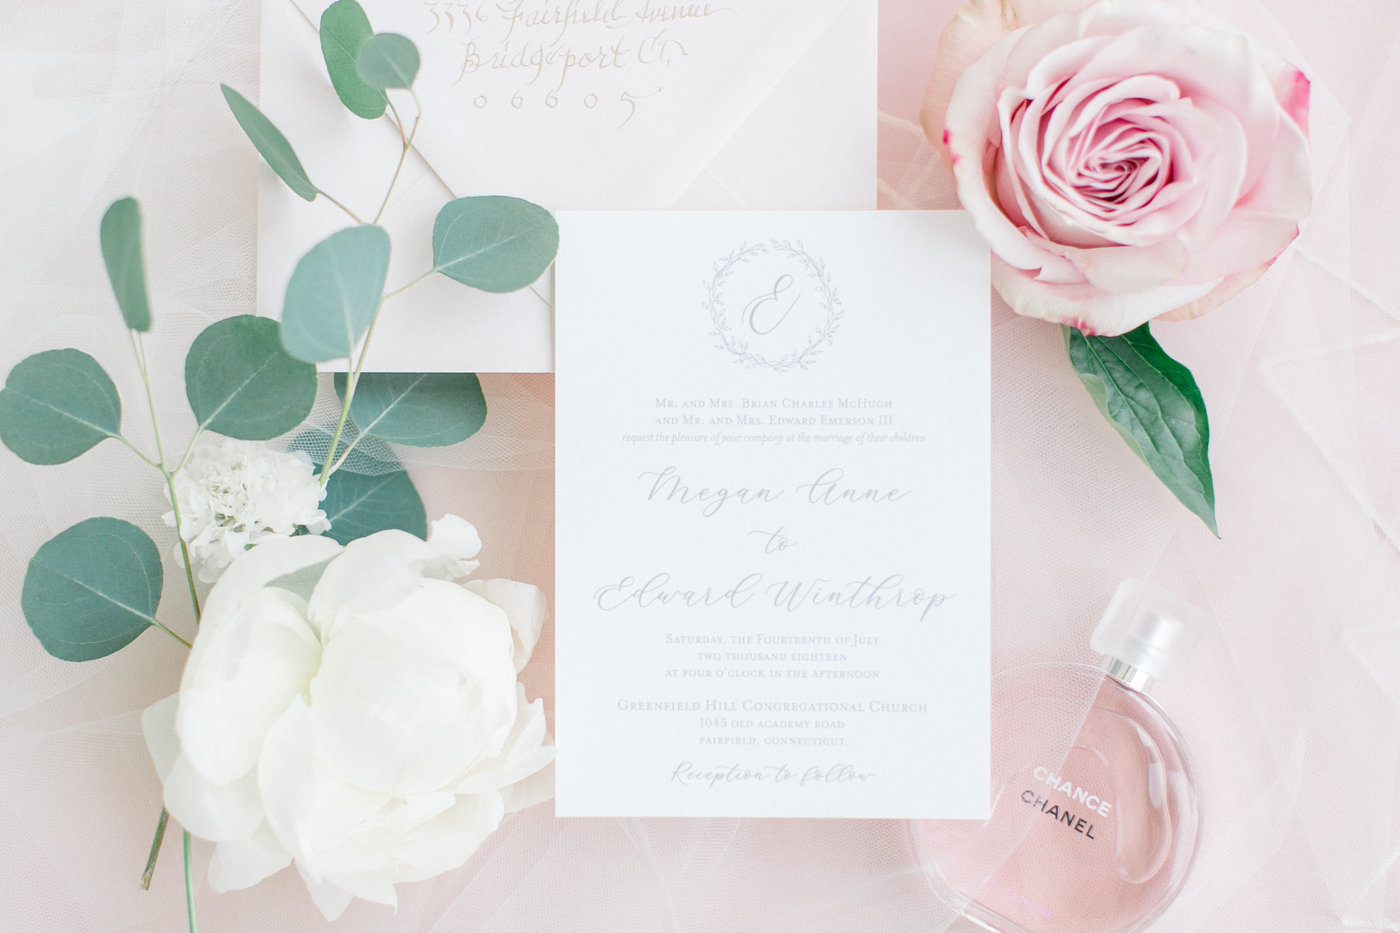 Shorehaven Golf Club wedding flat lay invitation peony rose pink white.jpg